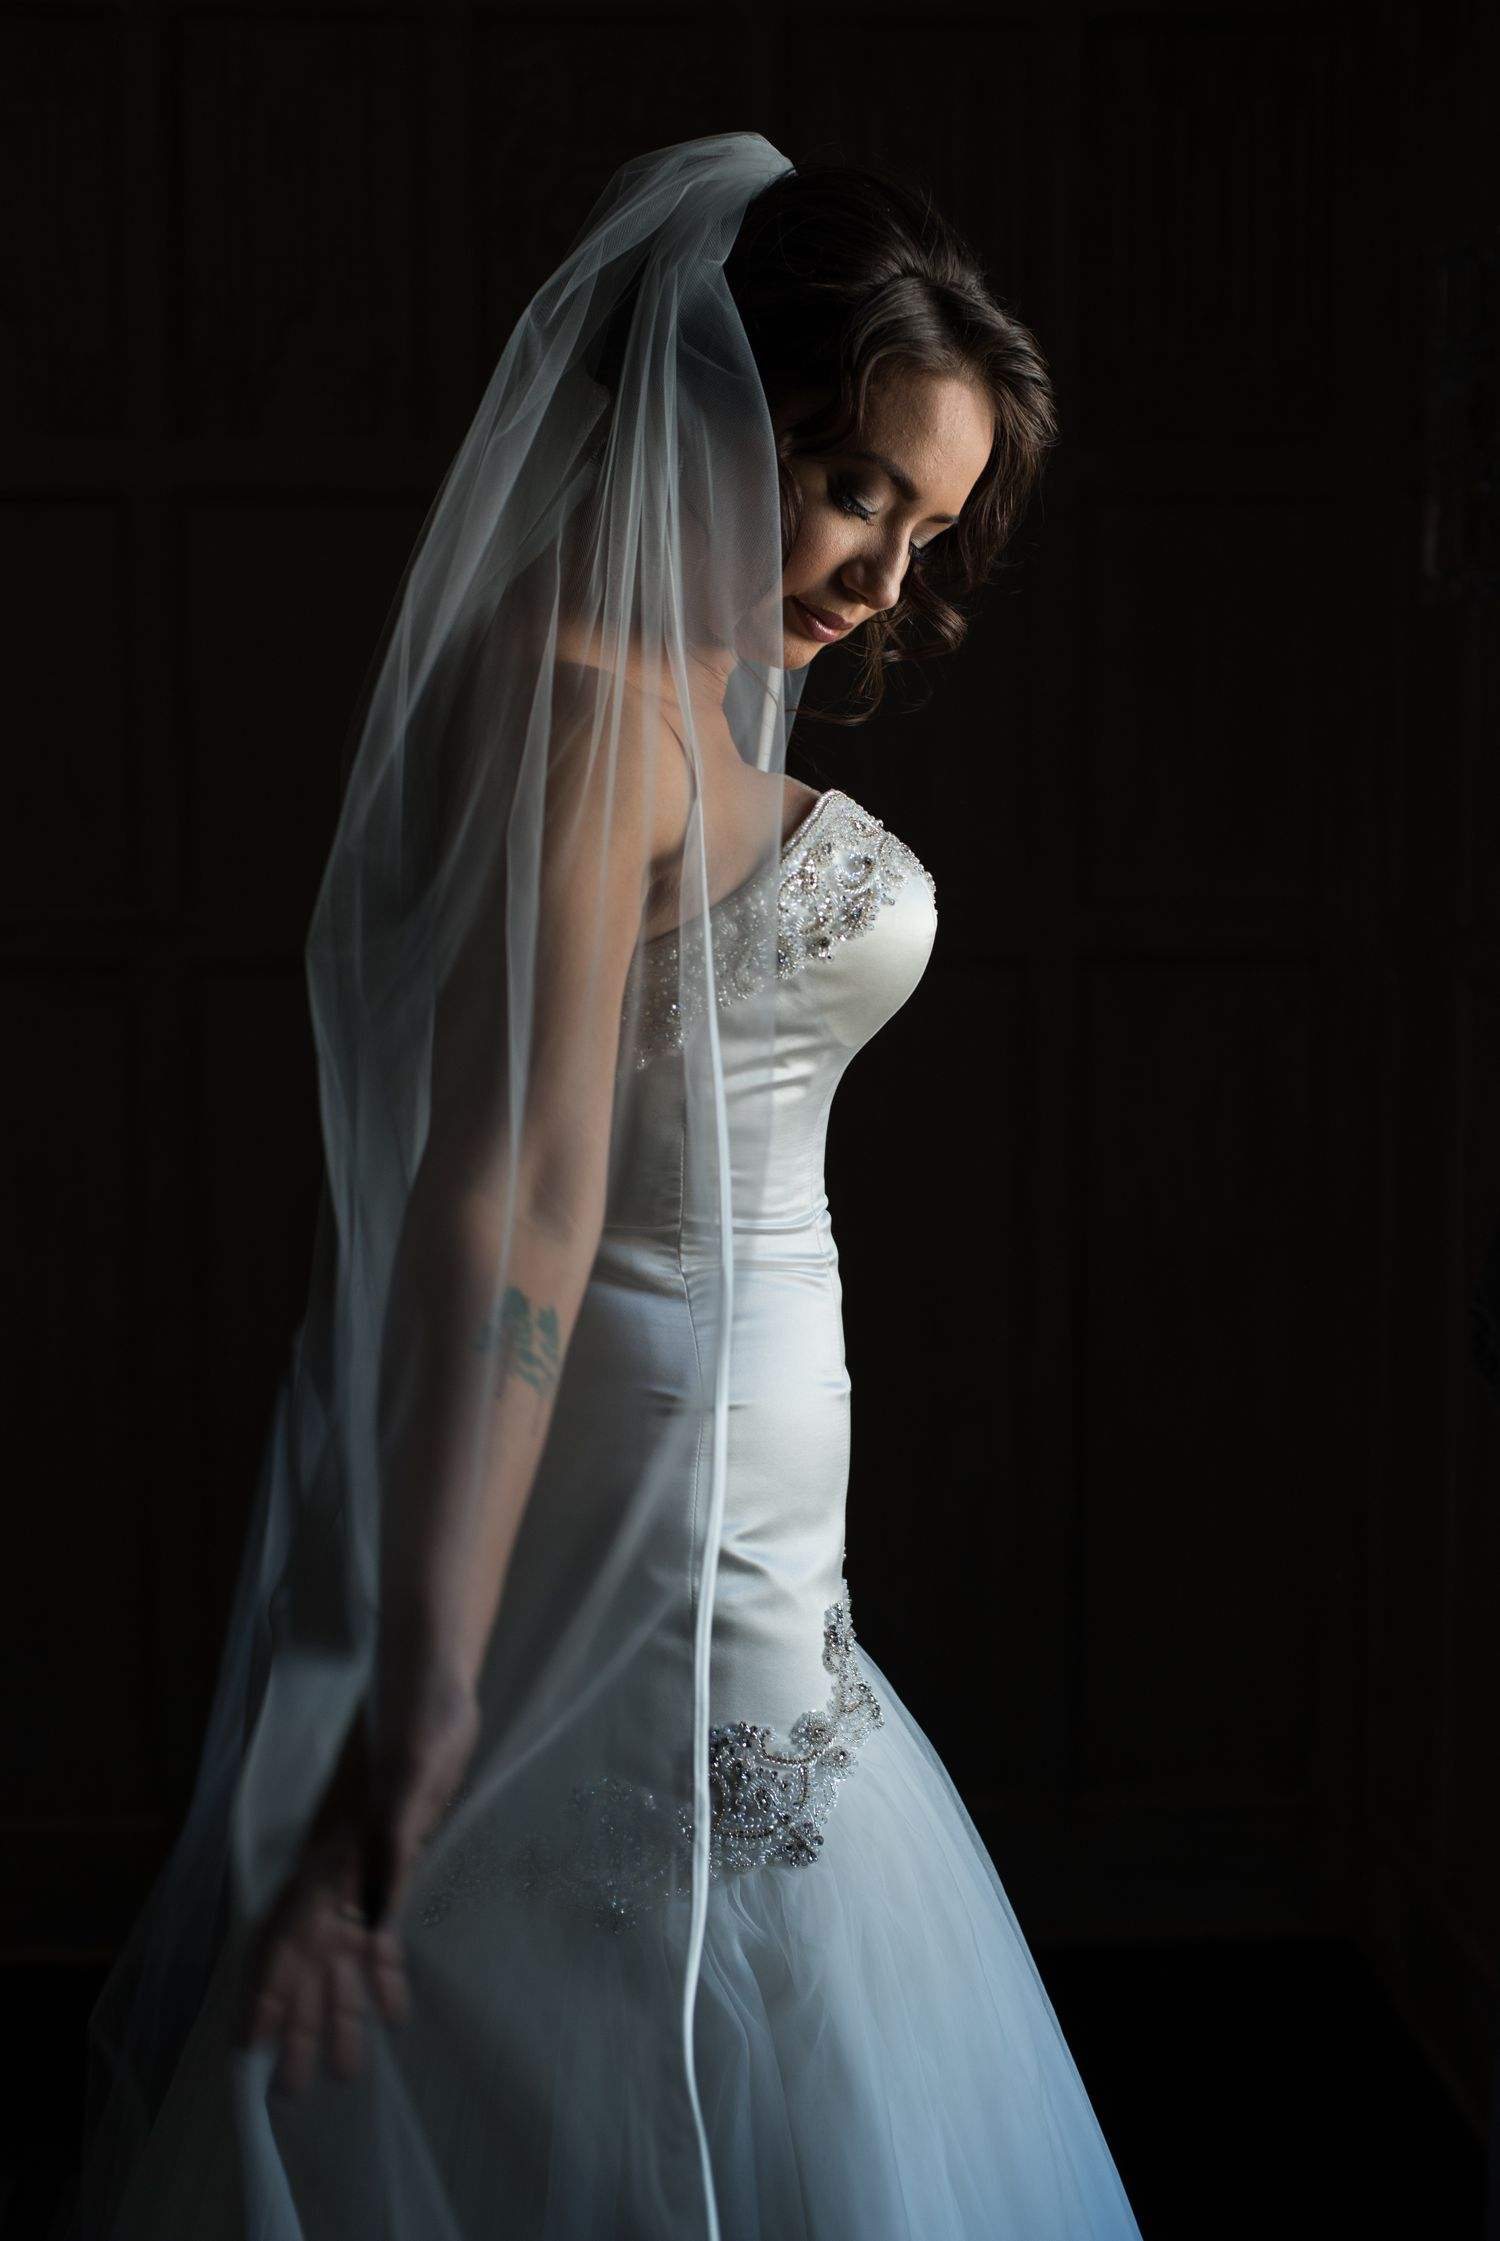 A portrait of the bride before the ceremony